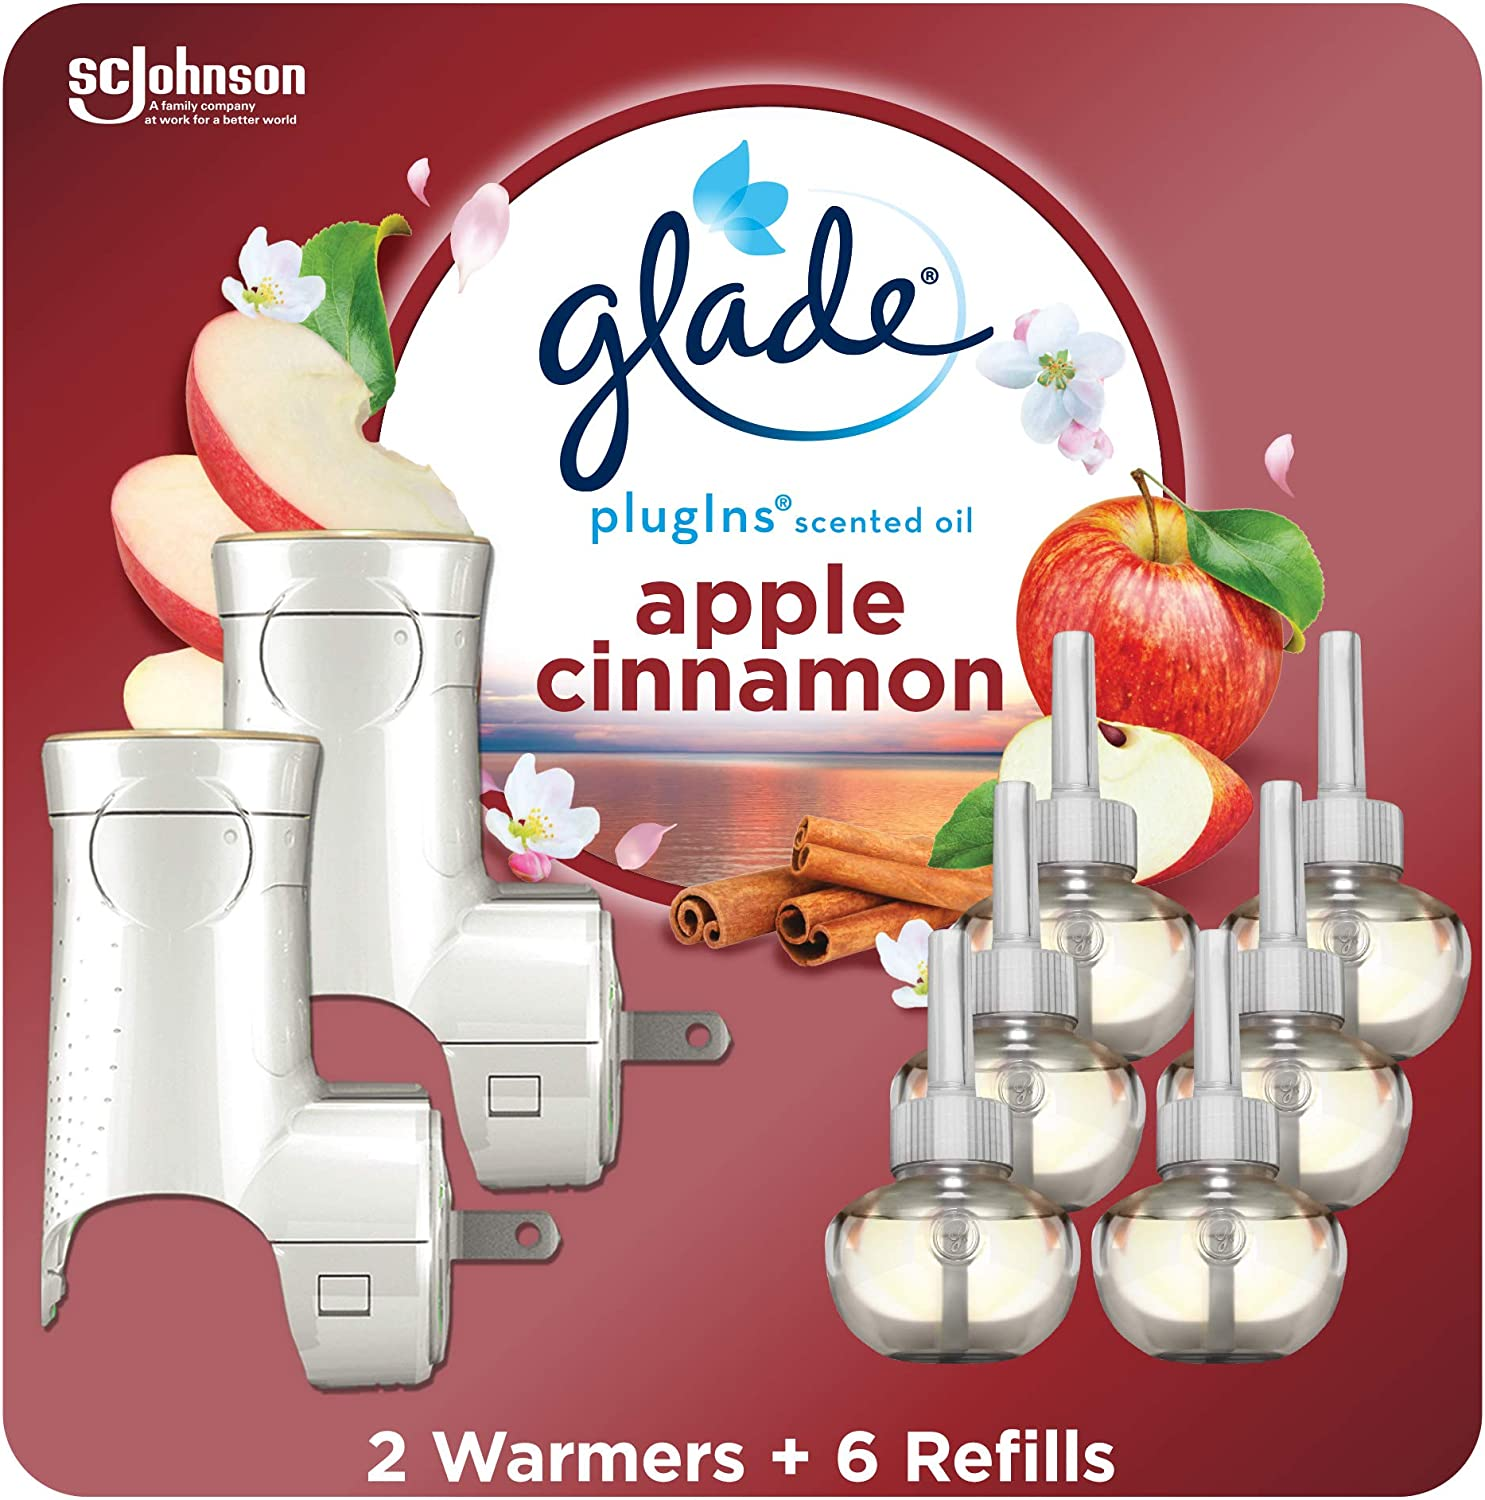 Glade PlugIns Refills Air Freshener Starter Kit, Scented Oil for Home and Bathroom, Apple Cinnamon, 4.02 Fl Oz, 2 Warmers + 6 Refills